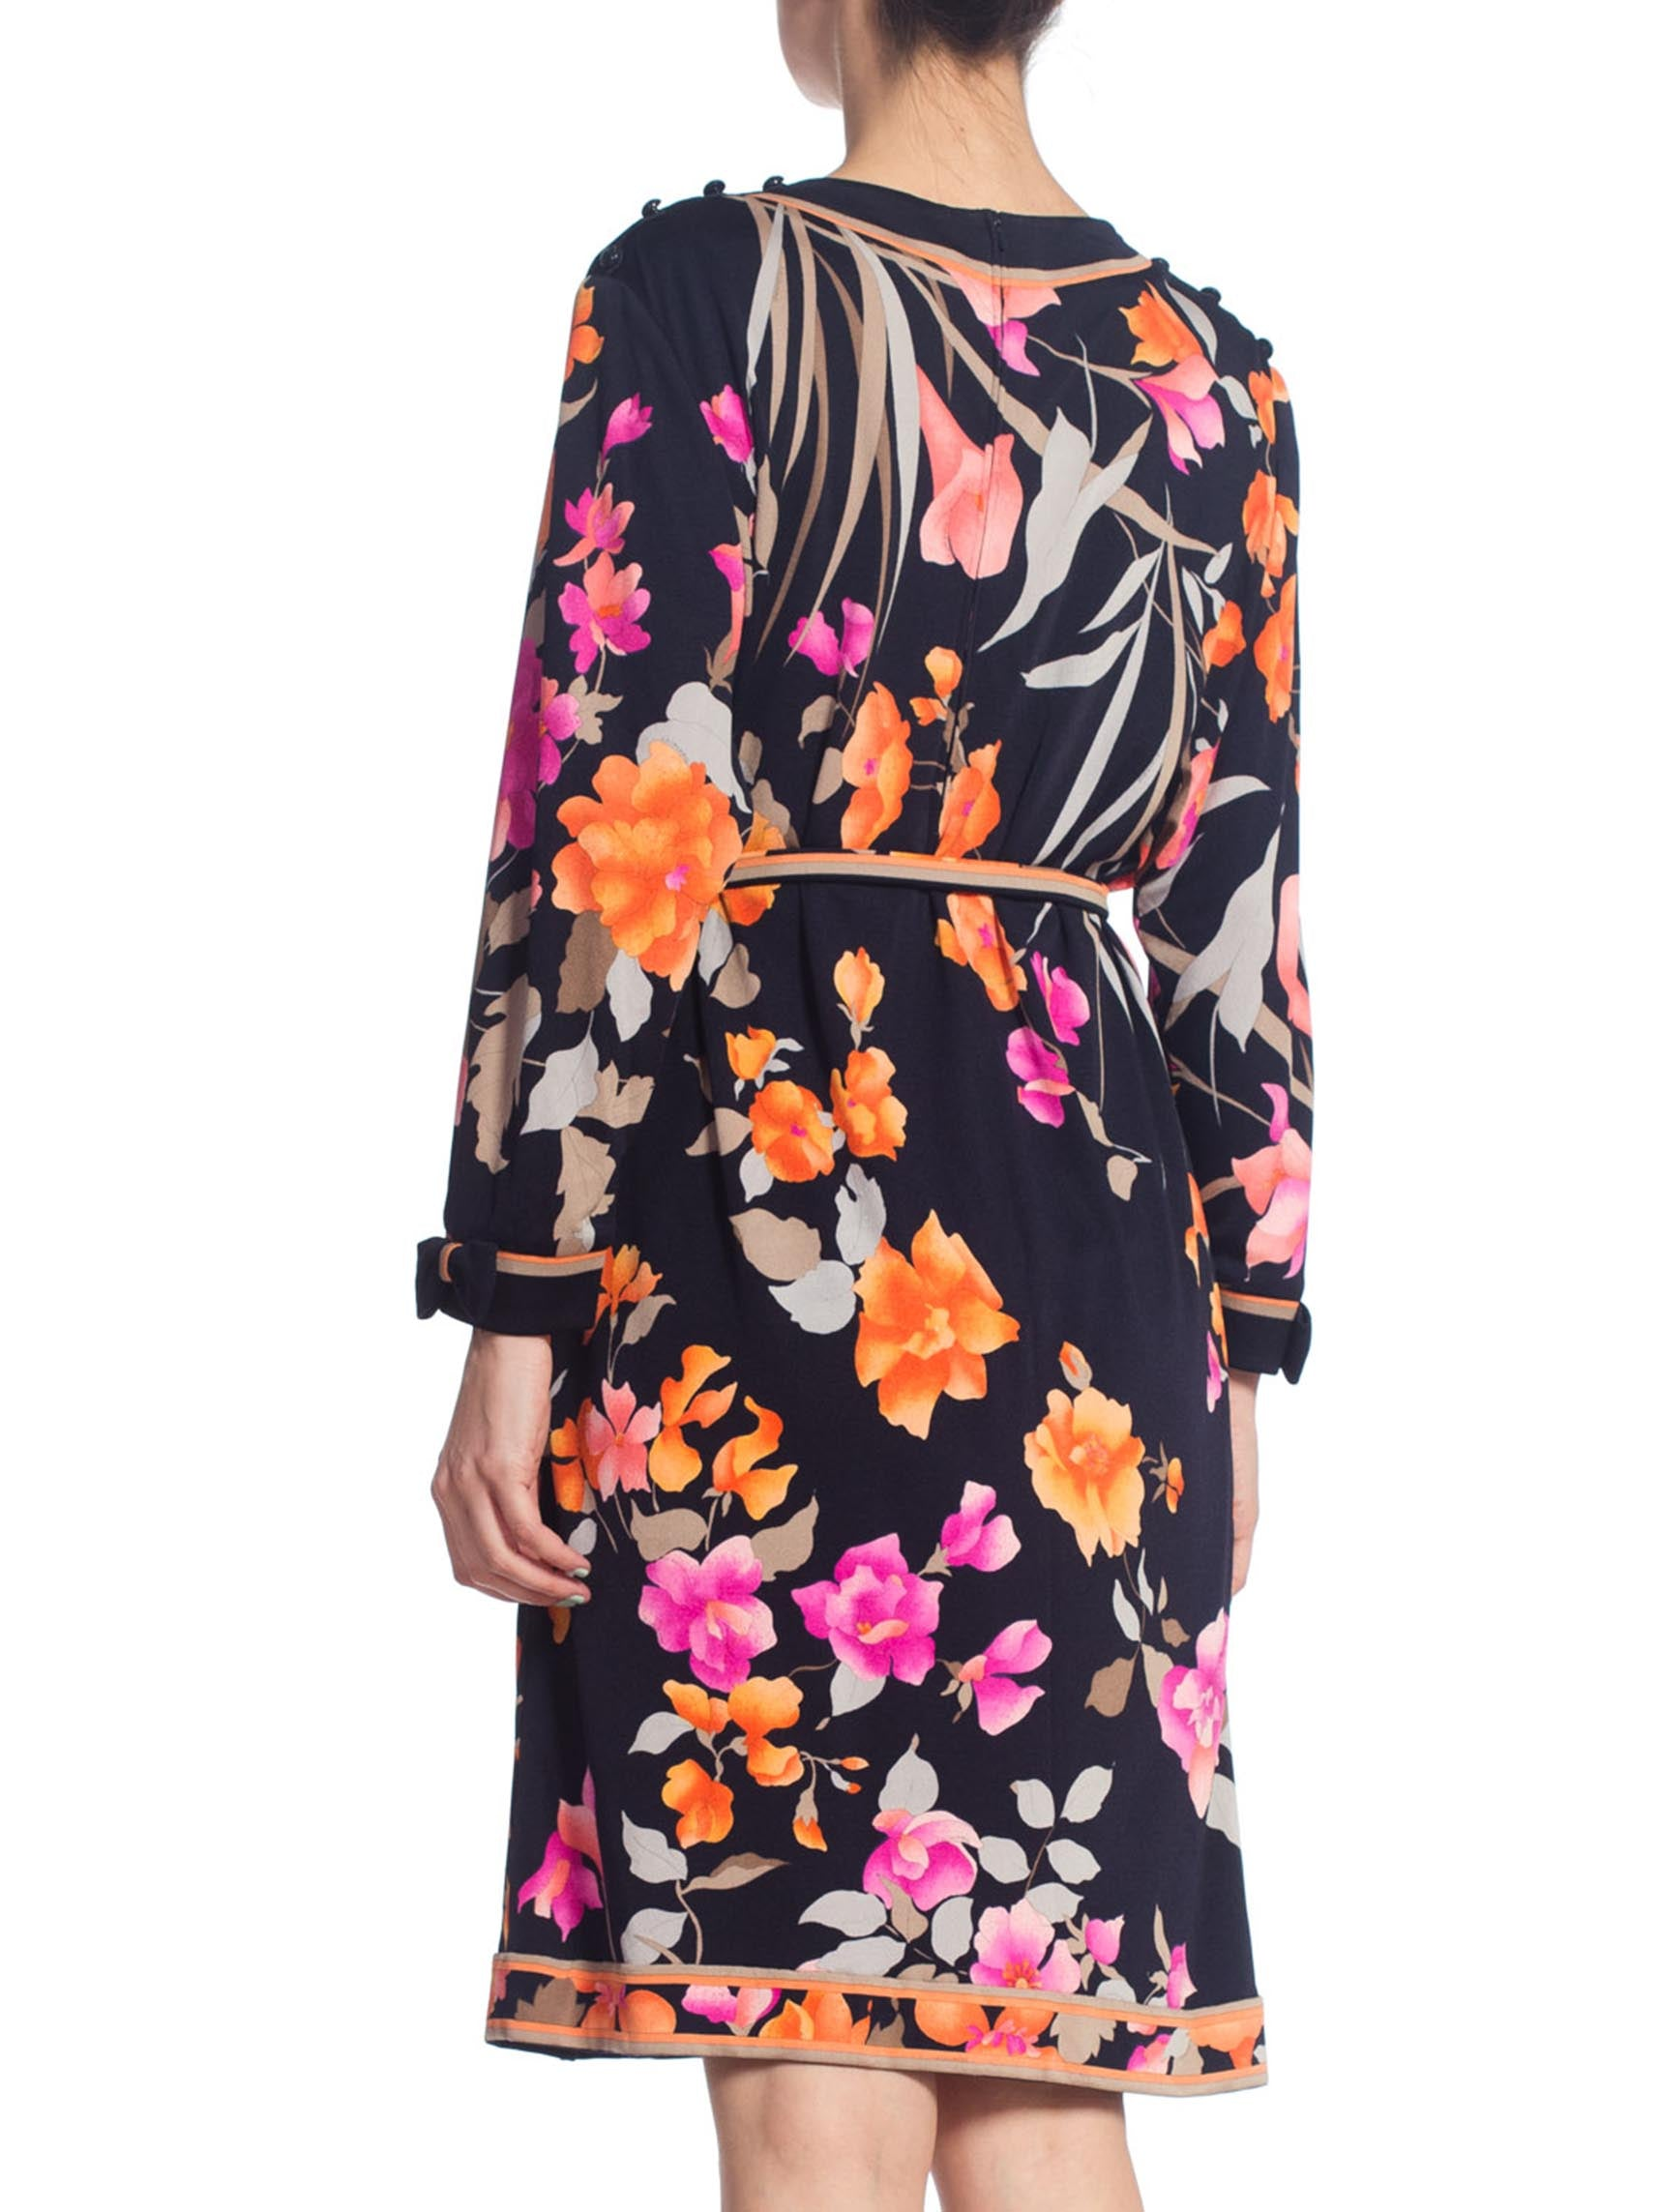 1980S LEONARD Black & Pink Silk Floral Printed Dress With Sleeves Belt